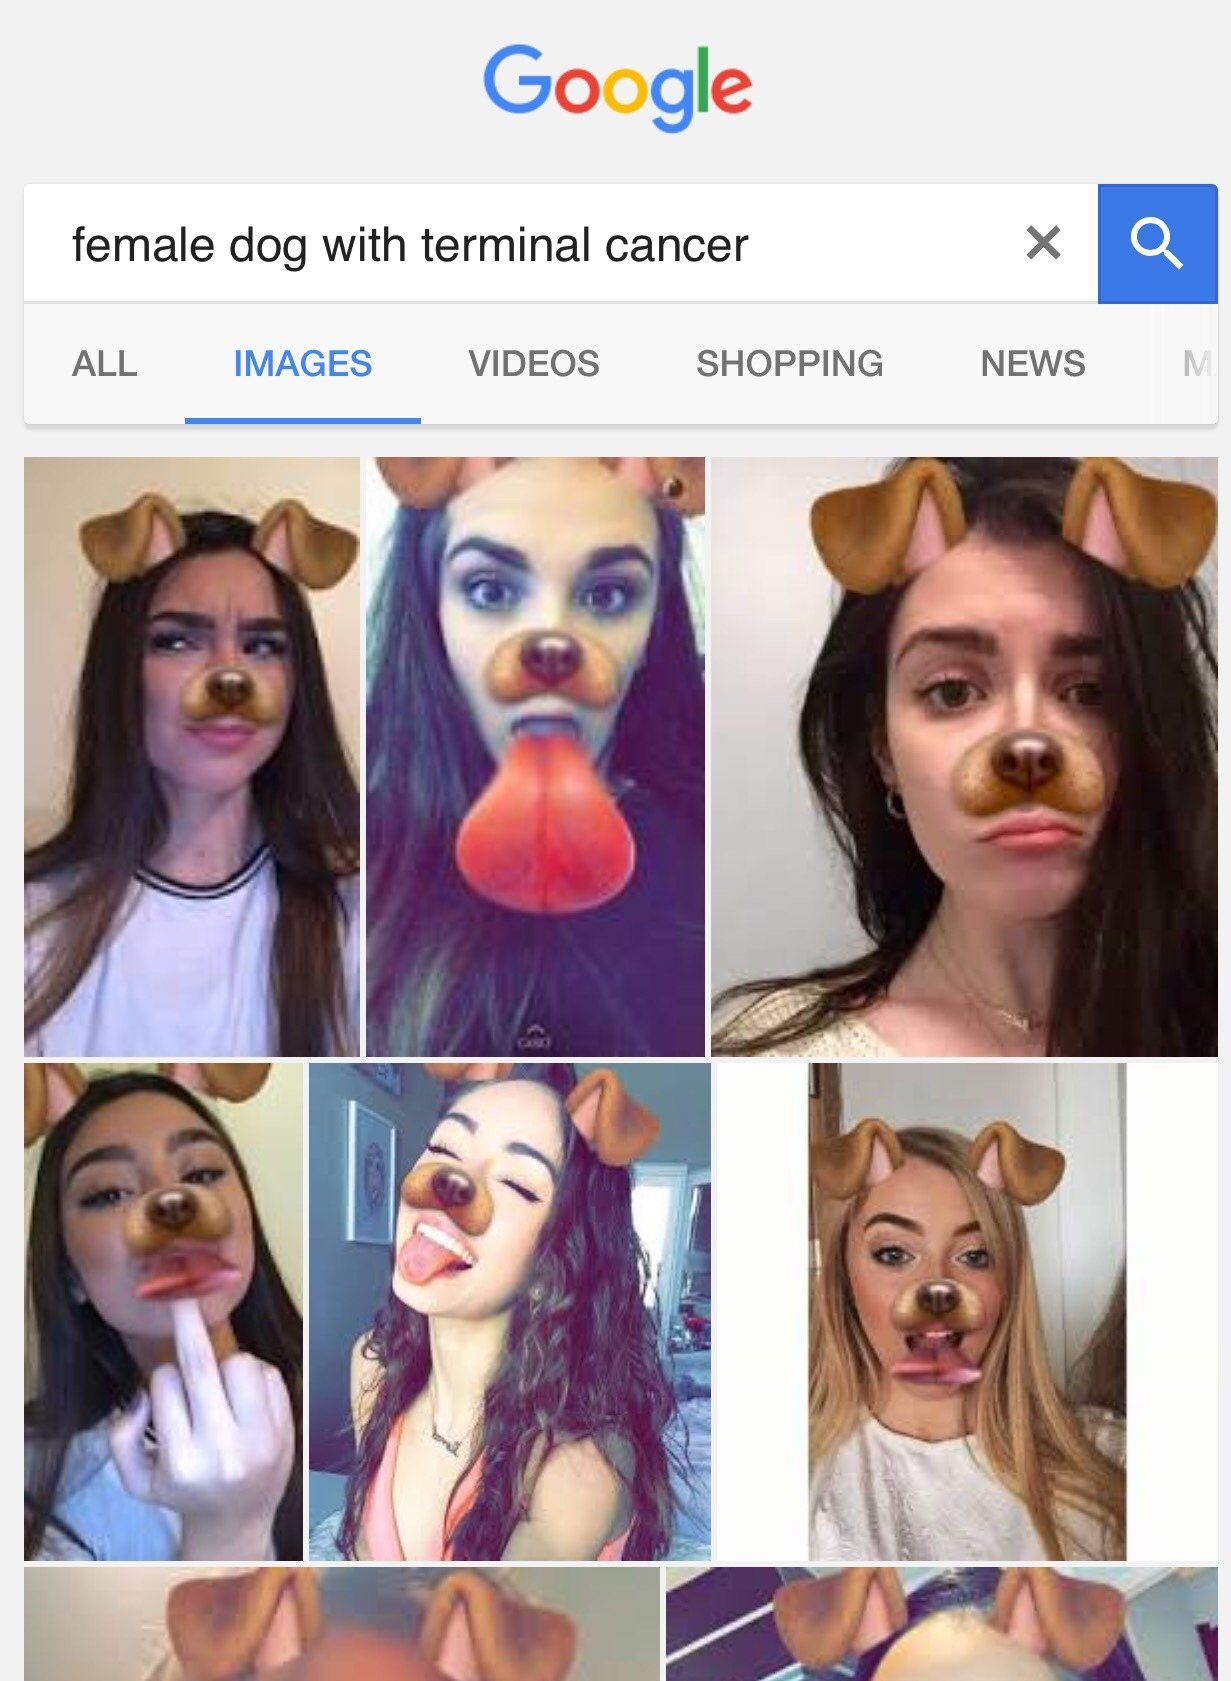 if you use the dog filter please contact a vet immediately